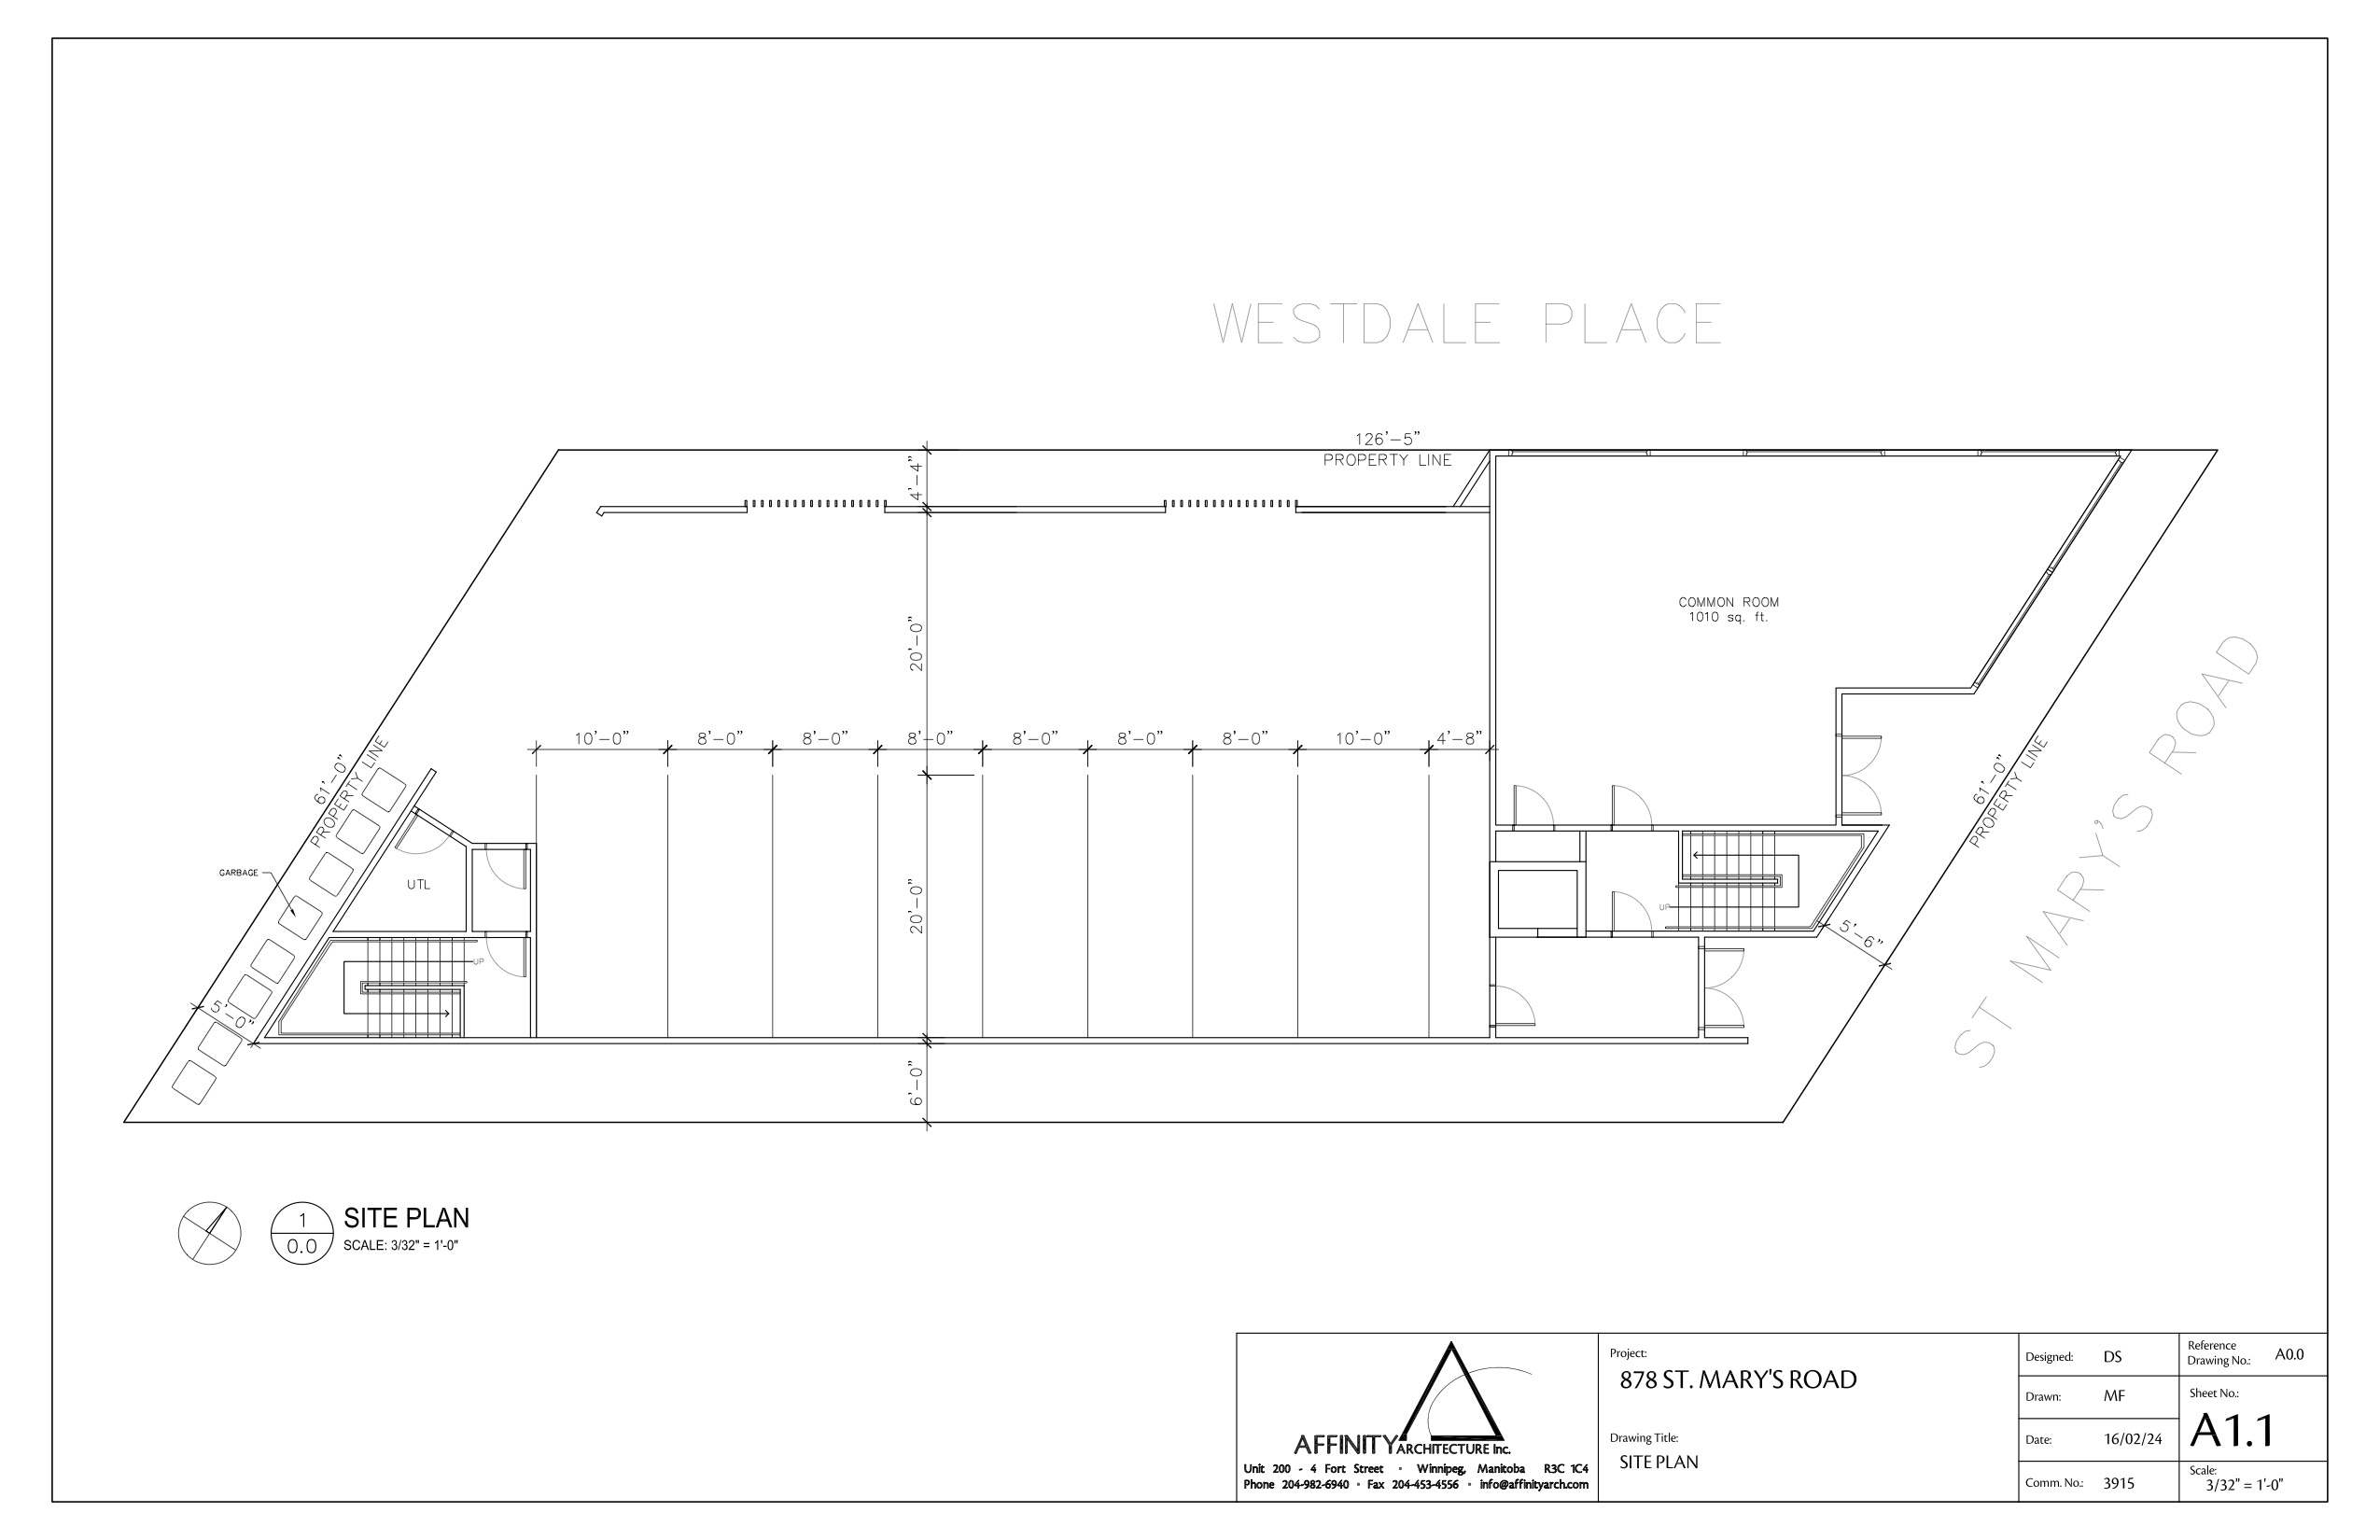 16 02 24 – 878 st. mary's site plan